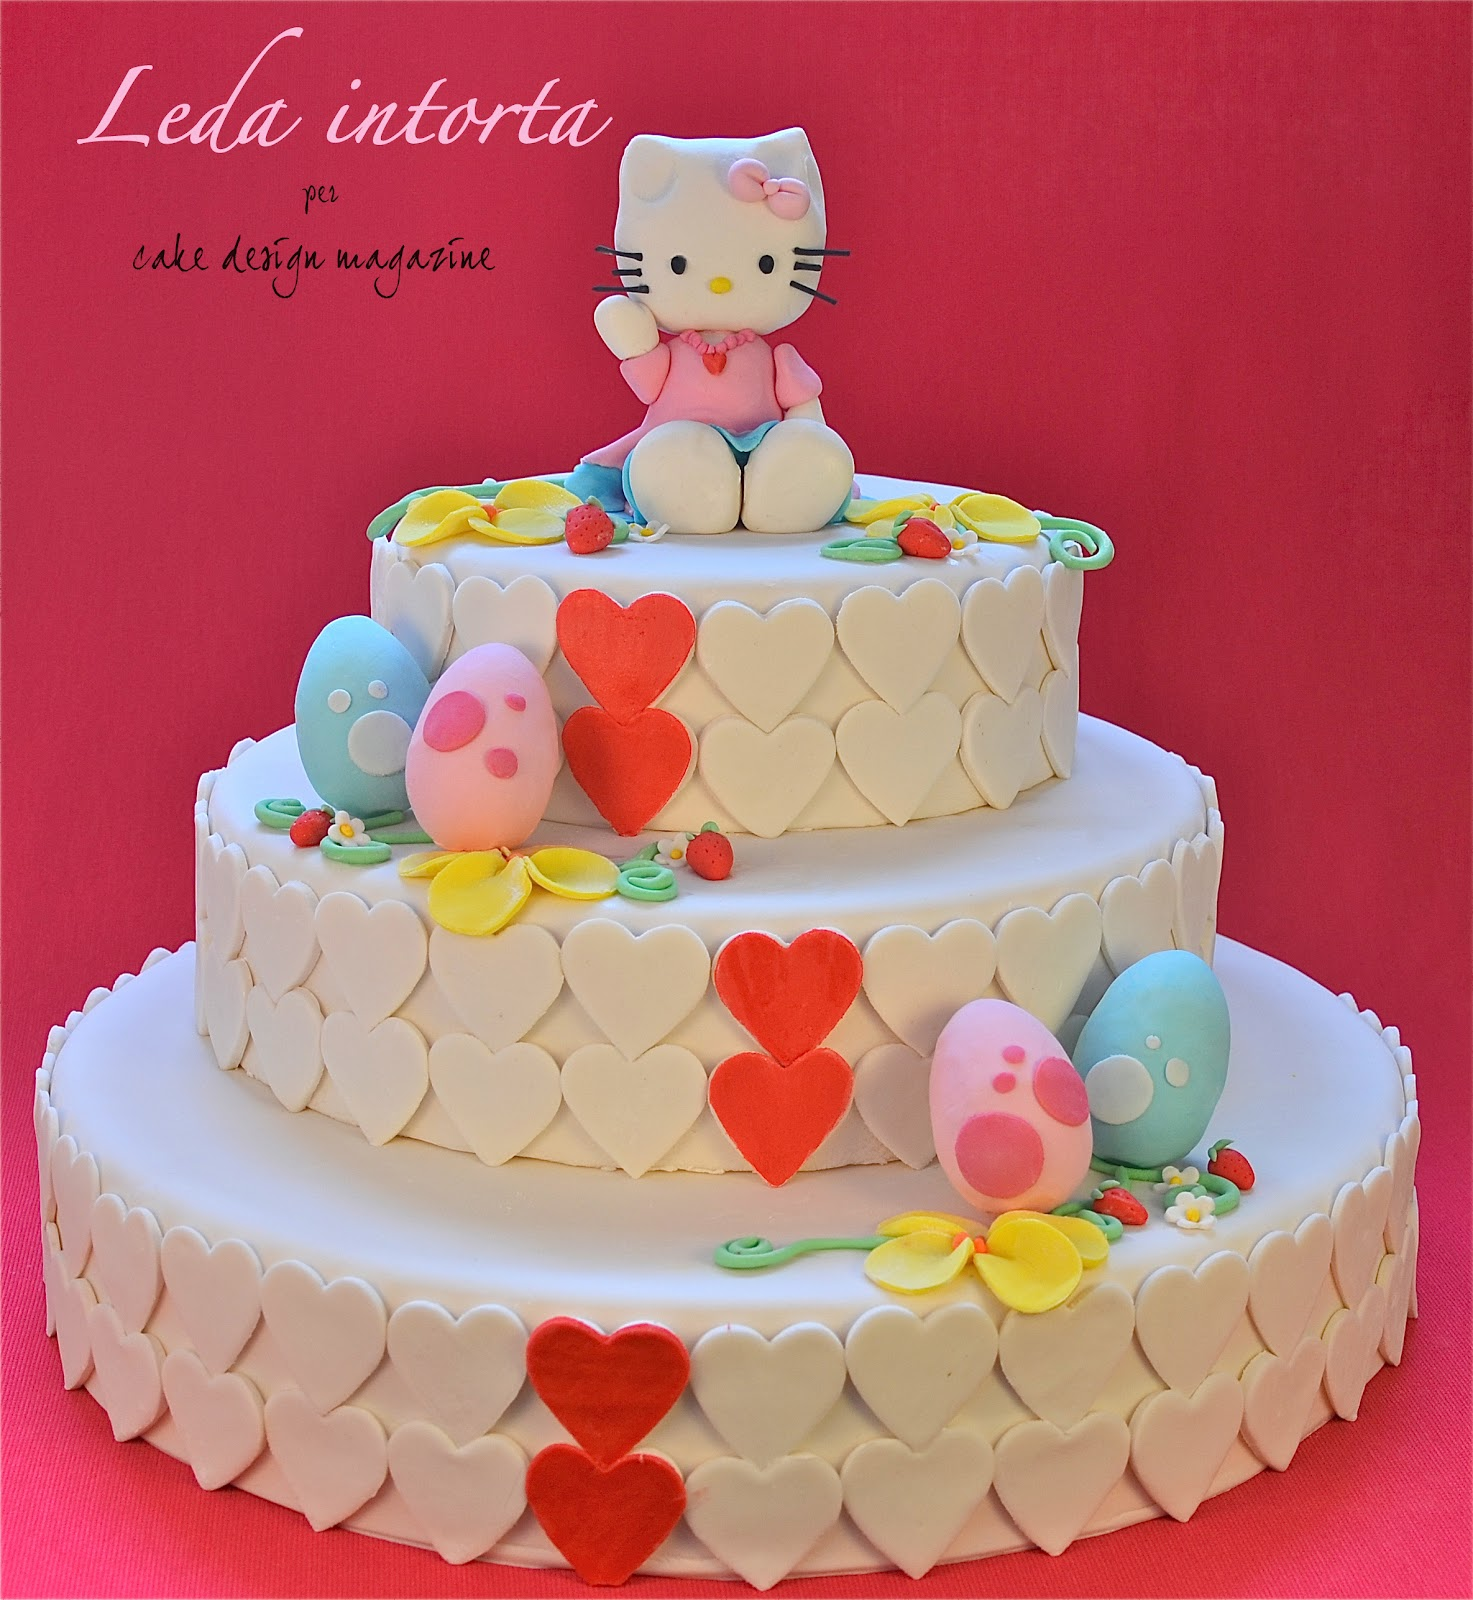 Hello Kitty, Hello kitty in pasta di zucchero, torta Hello Kitty, torta decorata, le torte di Leda, Leda intorta, come fare una torta in pasta di zucchero.